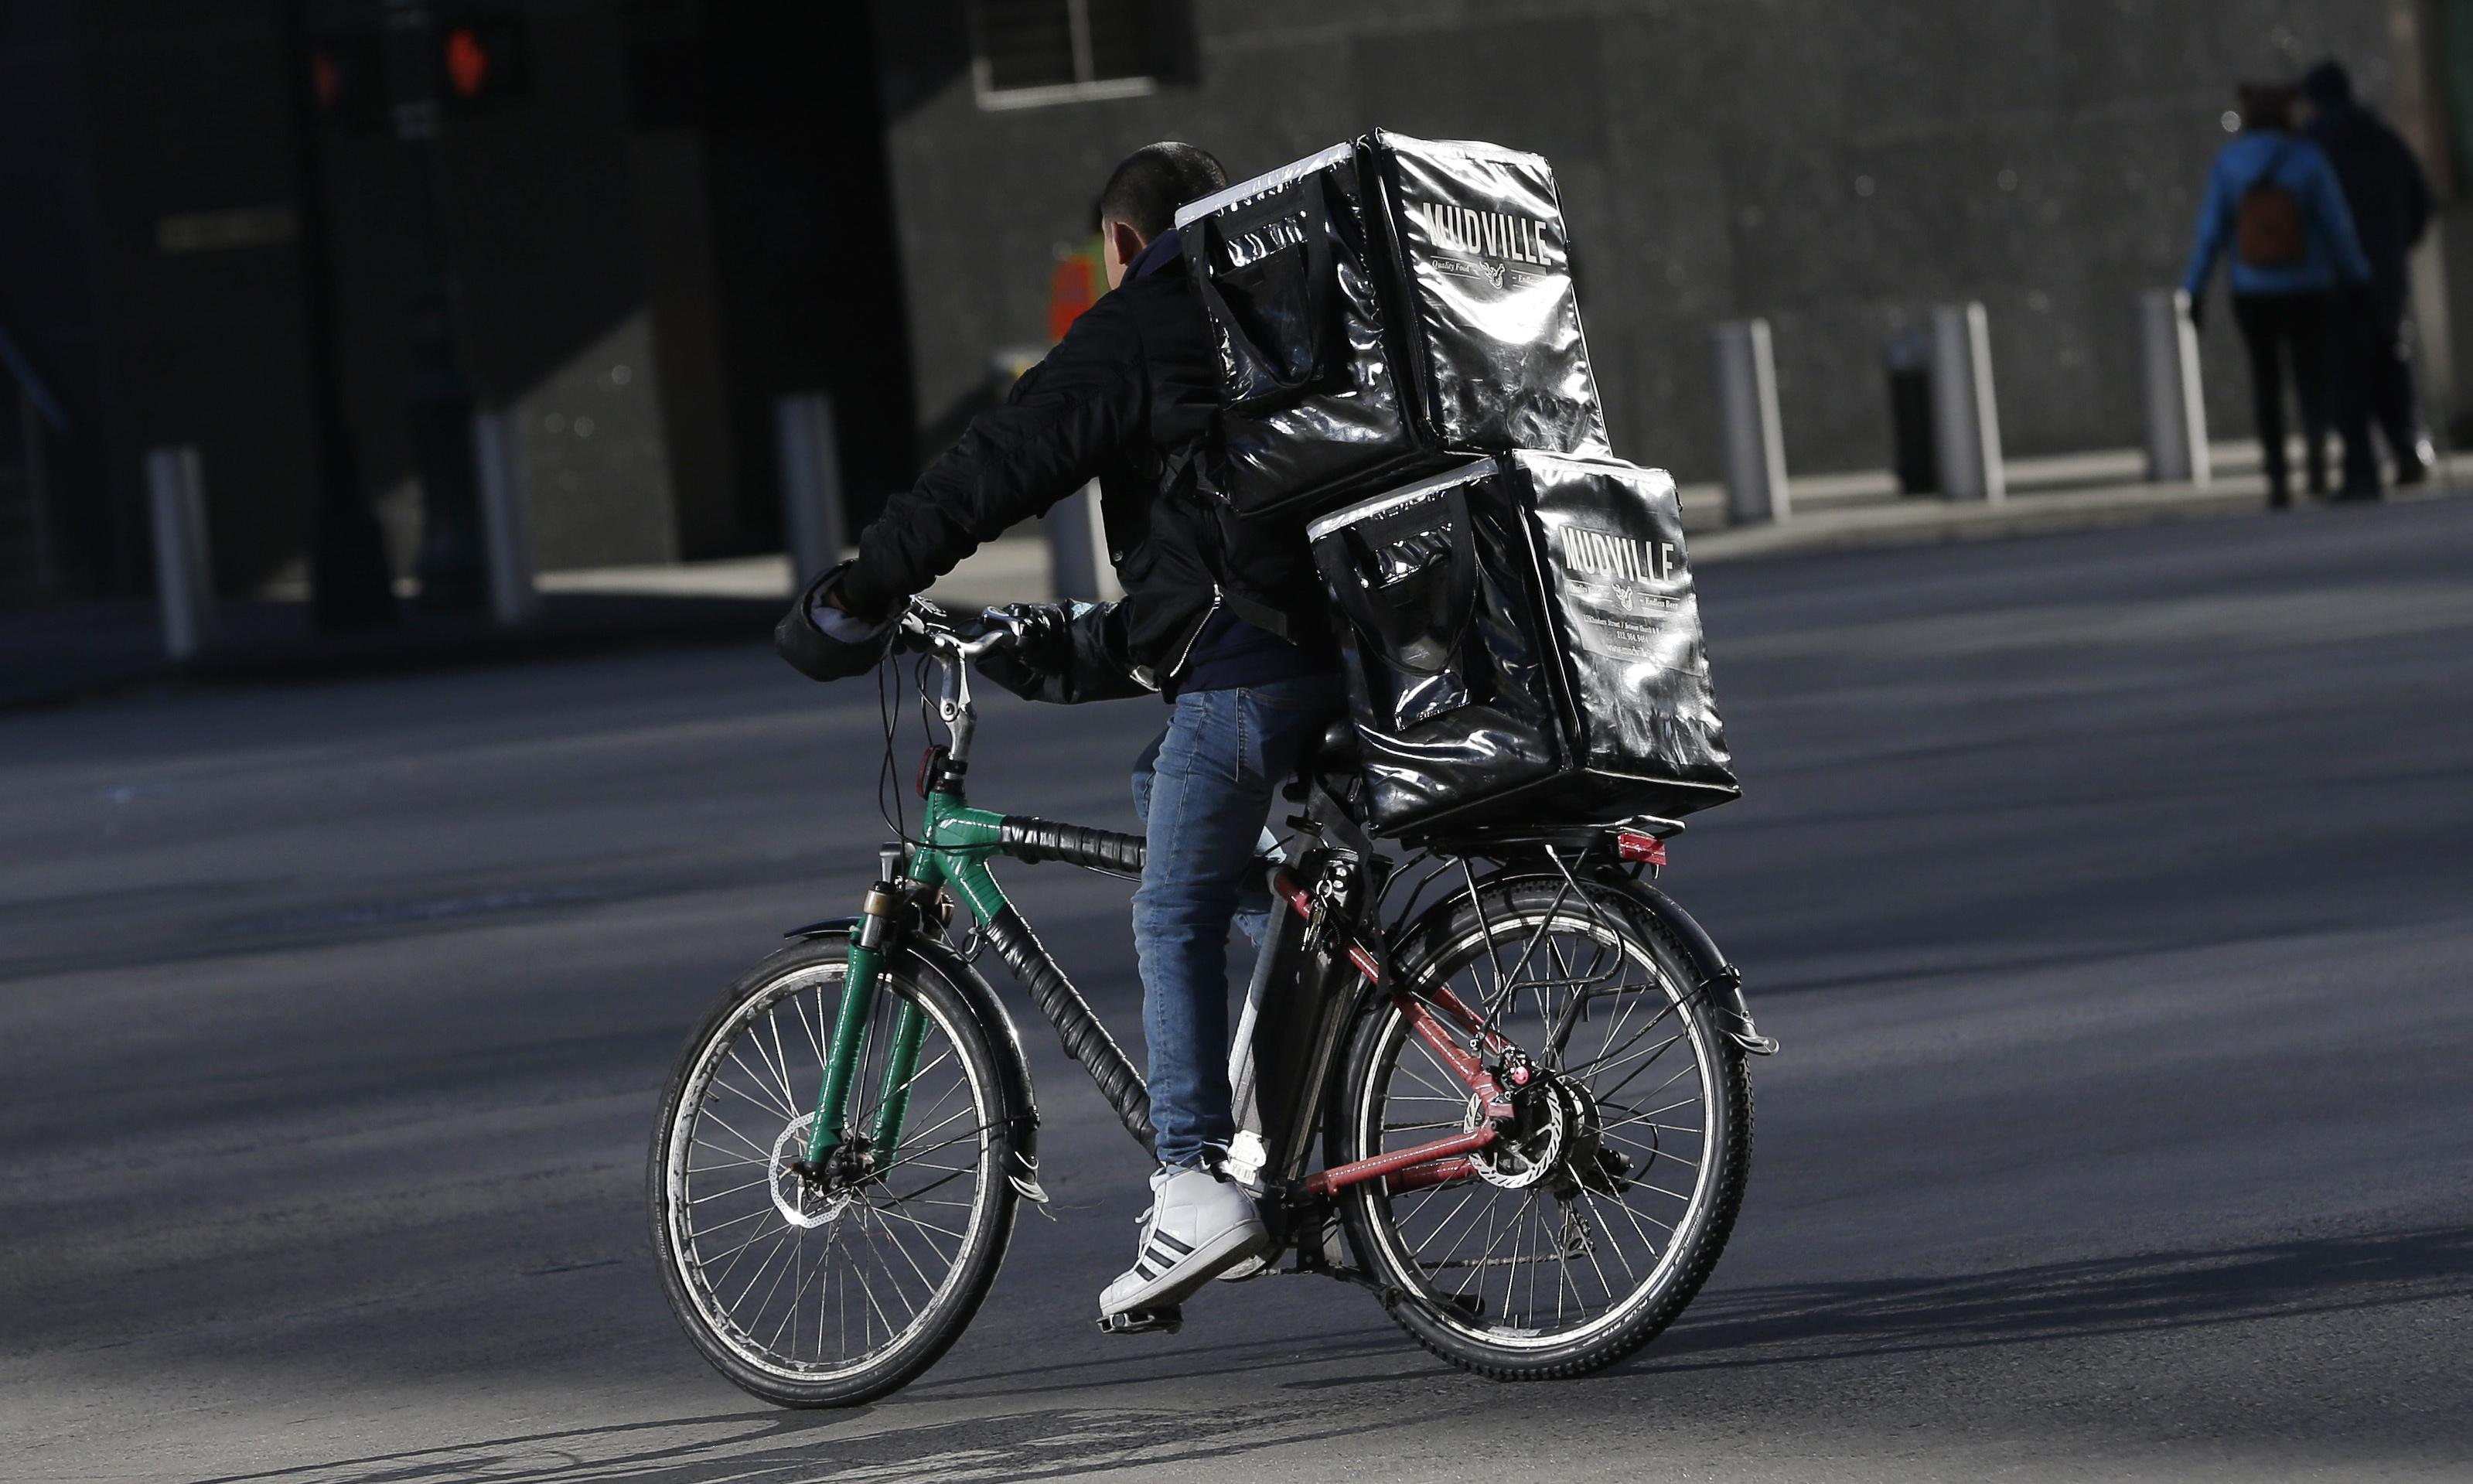 'It's persecution': New York City delivery workers fight electric bike ban